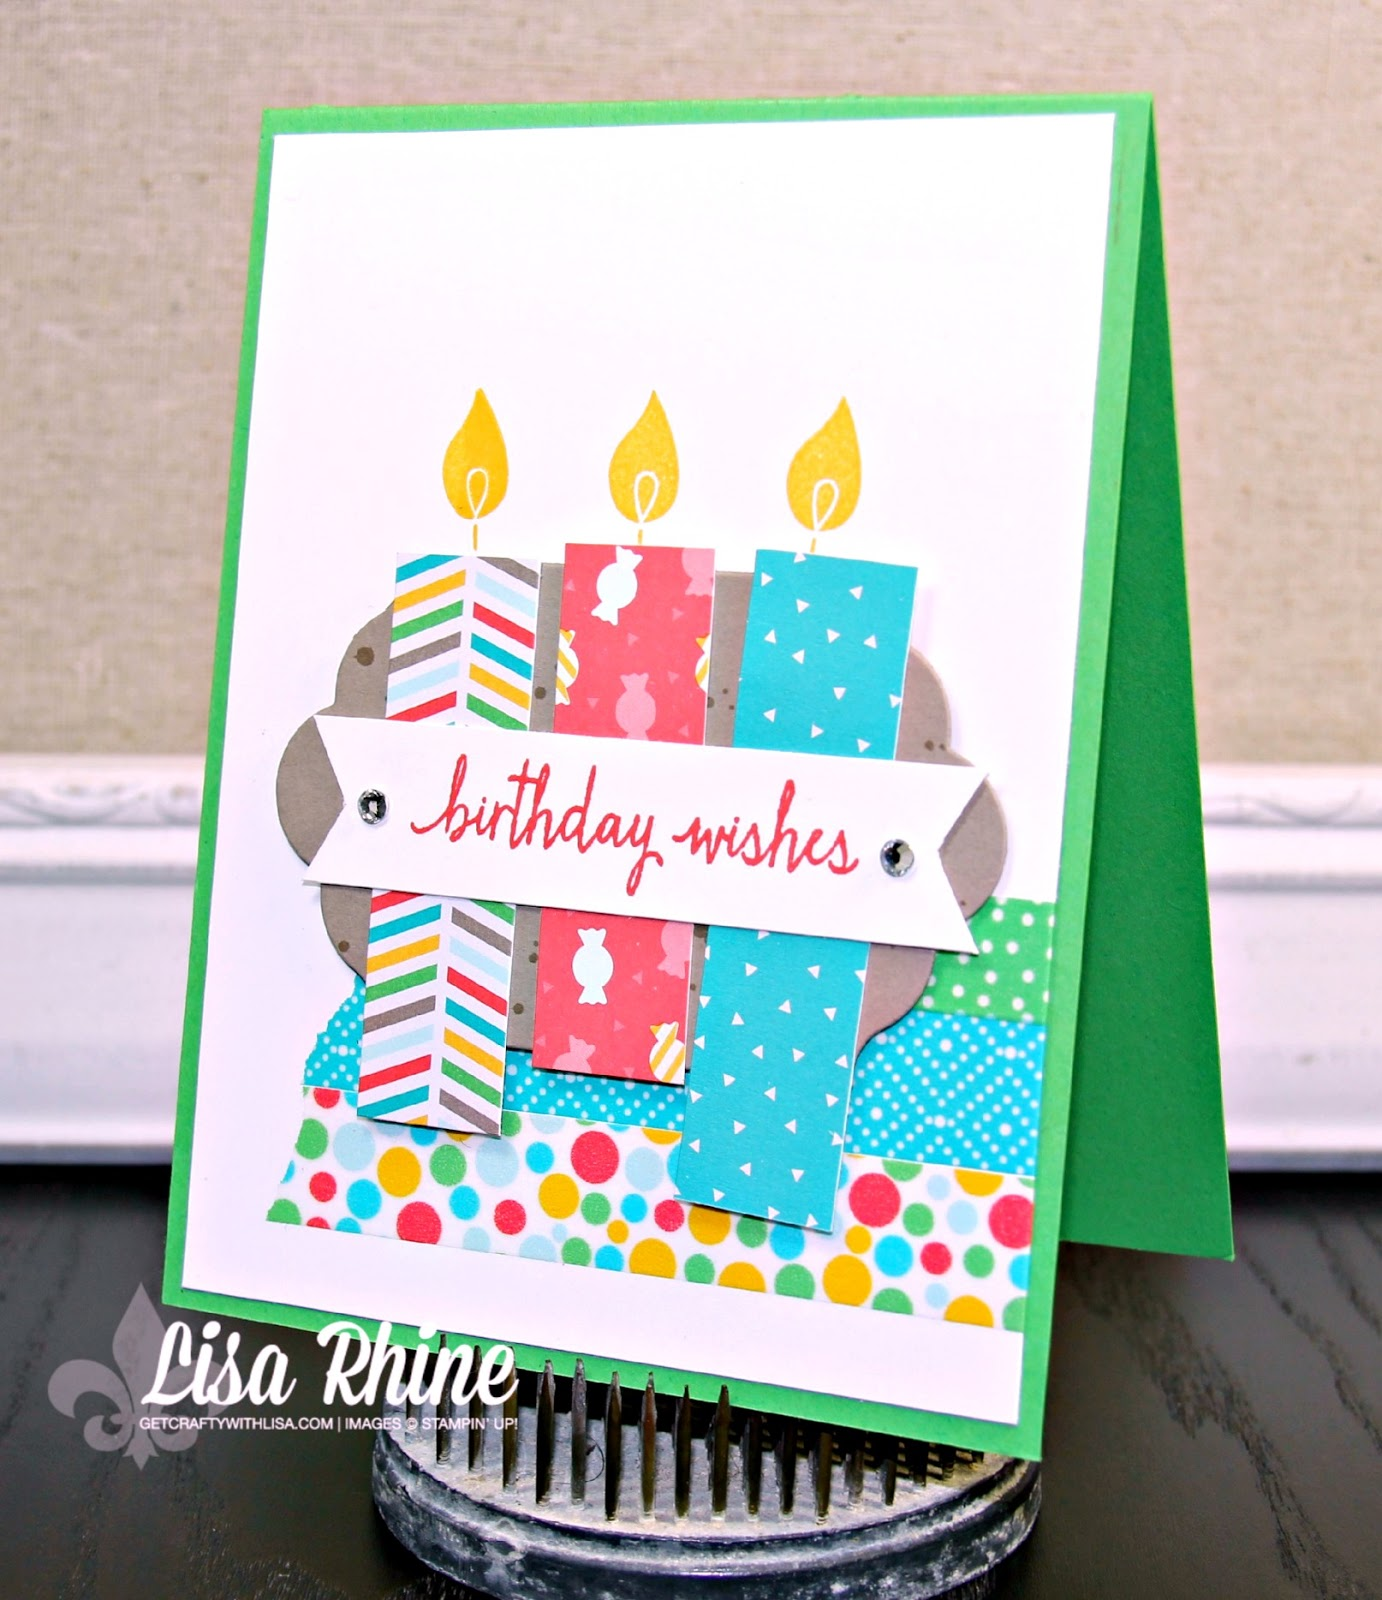 We Made This Card In My July Class Past Saturday And Attendees Loved It I Borrowed Design From A Saw On Pinterest By Jessica